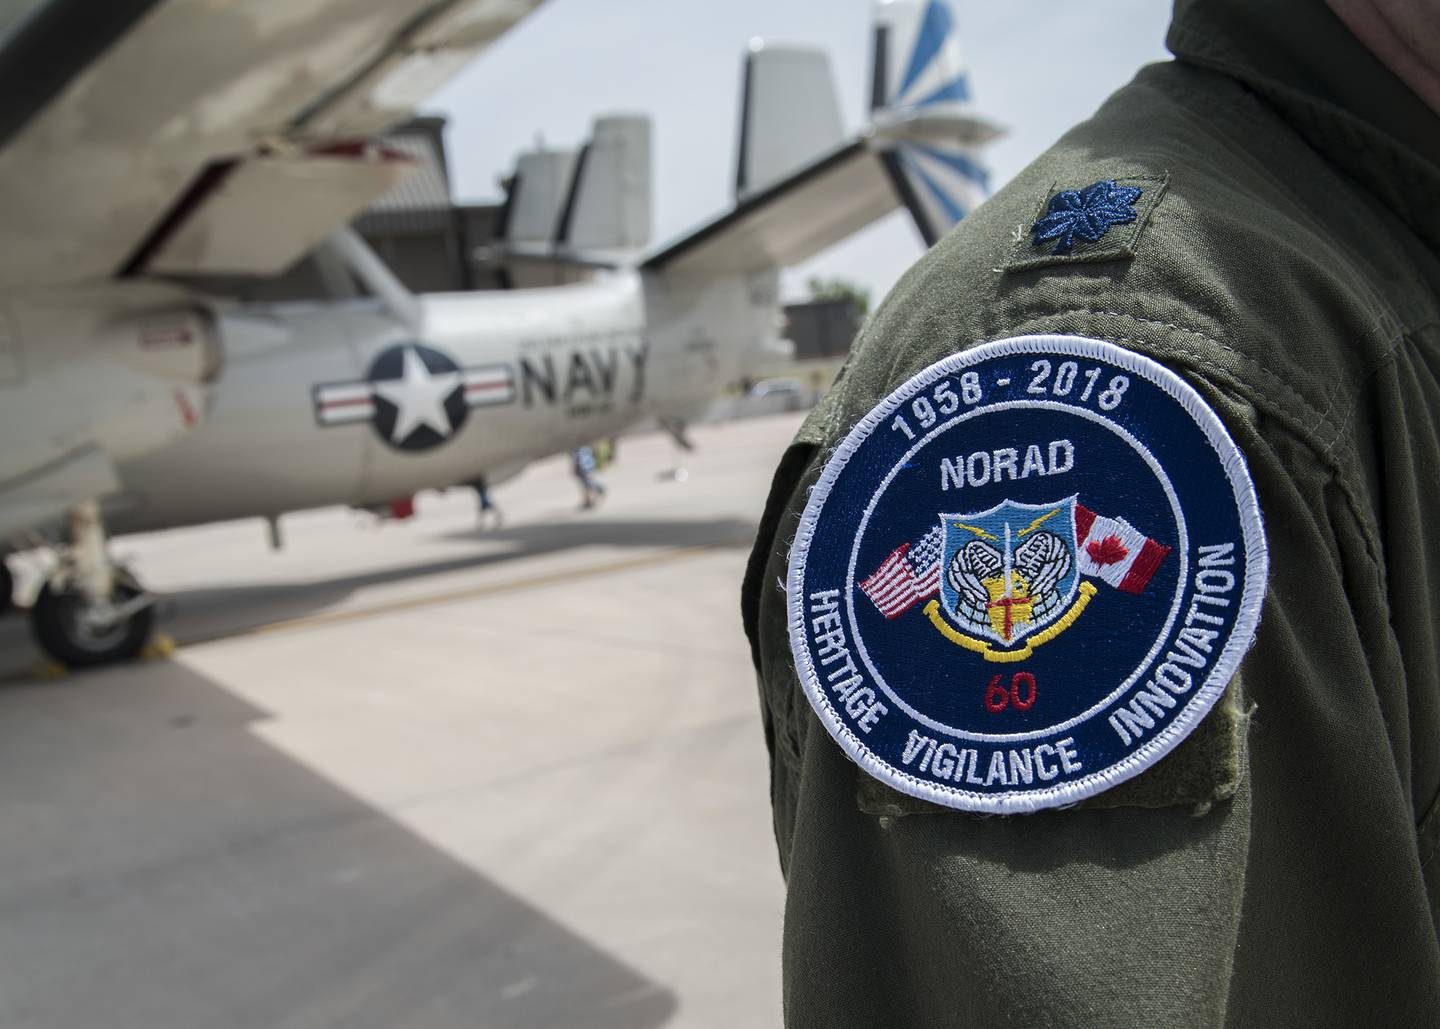 March 12, 2018, marks the 60th anniversary of the North American Aerospace Defense Command.